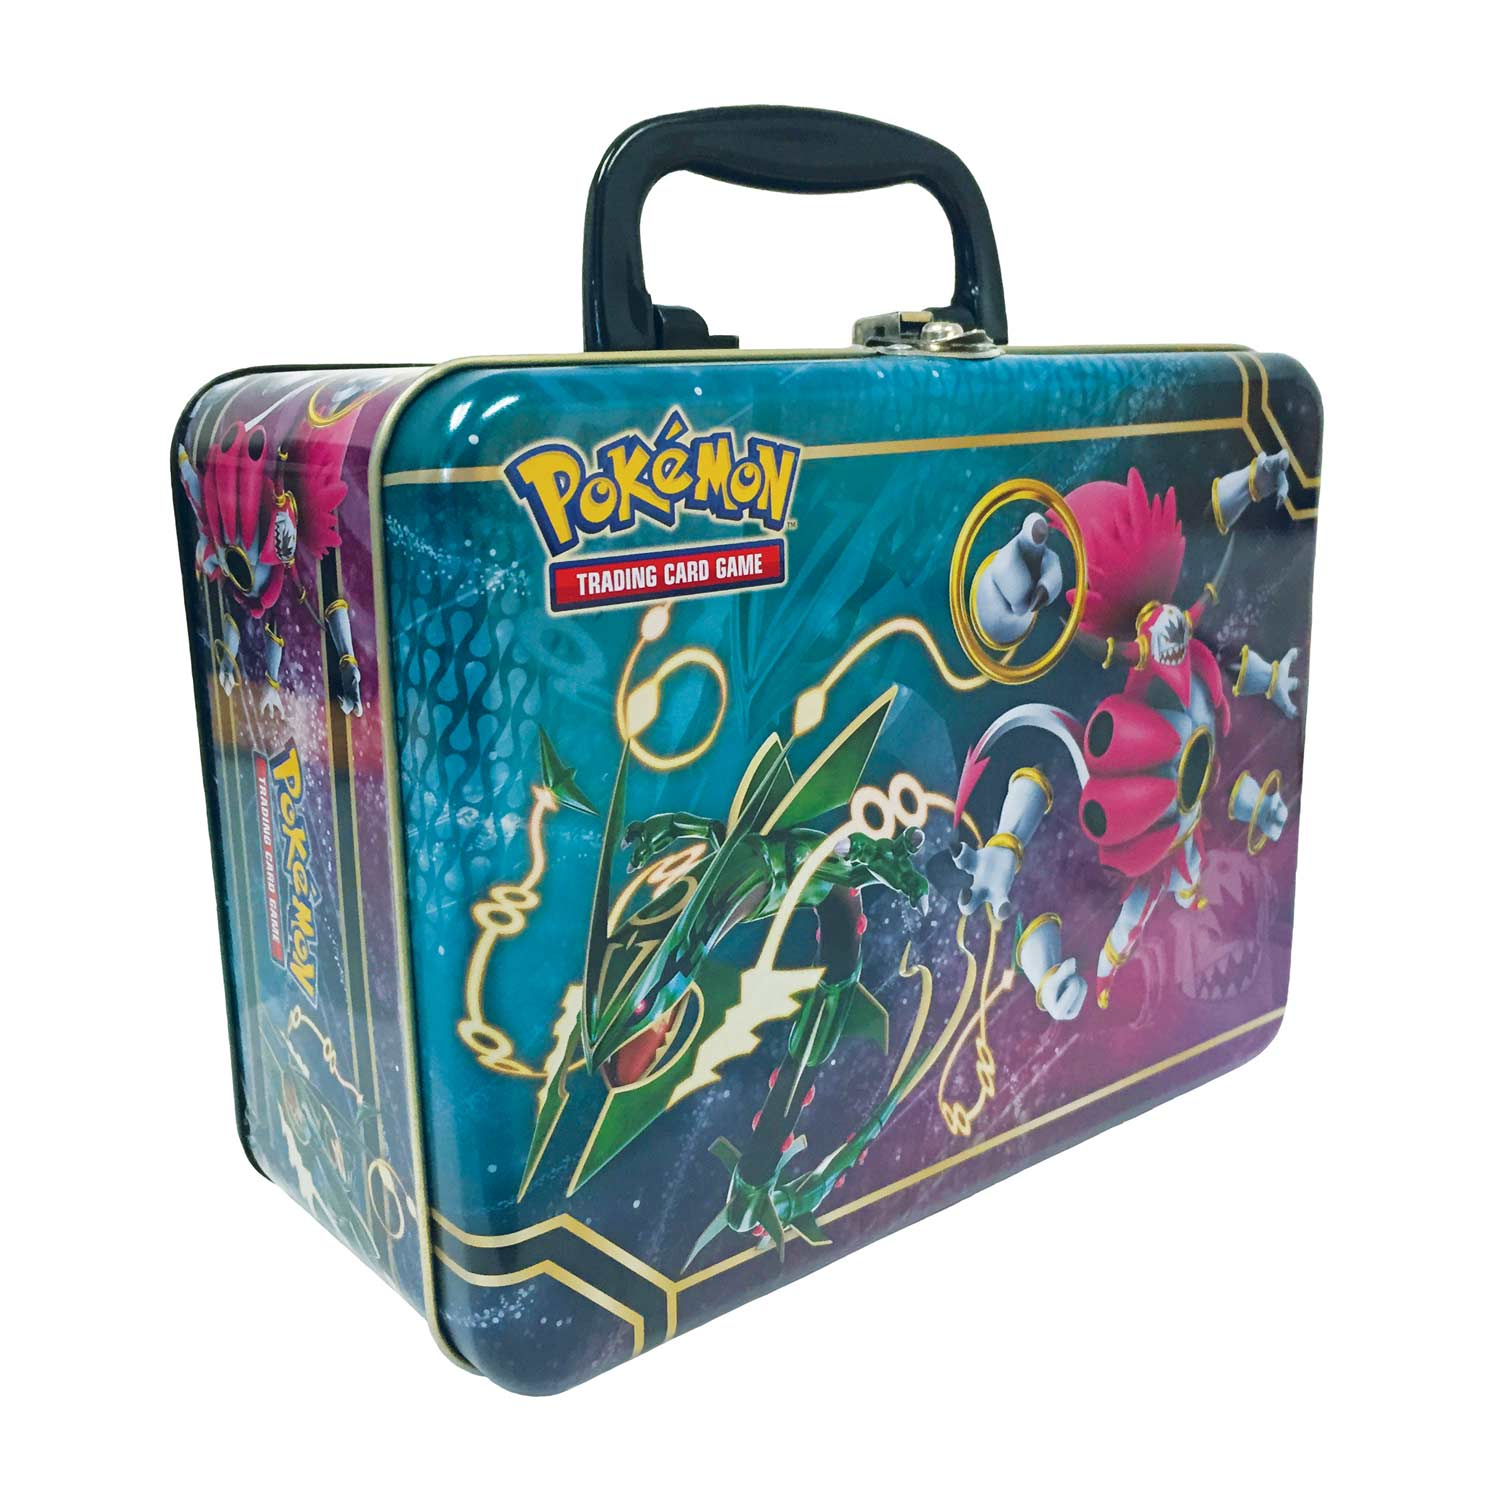 Image for Pokémon TCG Collector Chest from Pokemon Center. _5_3074457345618259663_3074457345618262055_3074457345618268804  sc 1 st  Pokemon Center & Pokémon TCG Collector Chest | Treasure Chest | promo cards ... Aboutintivar.Com